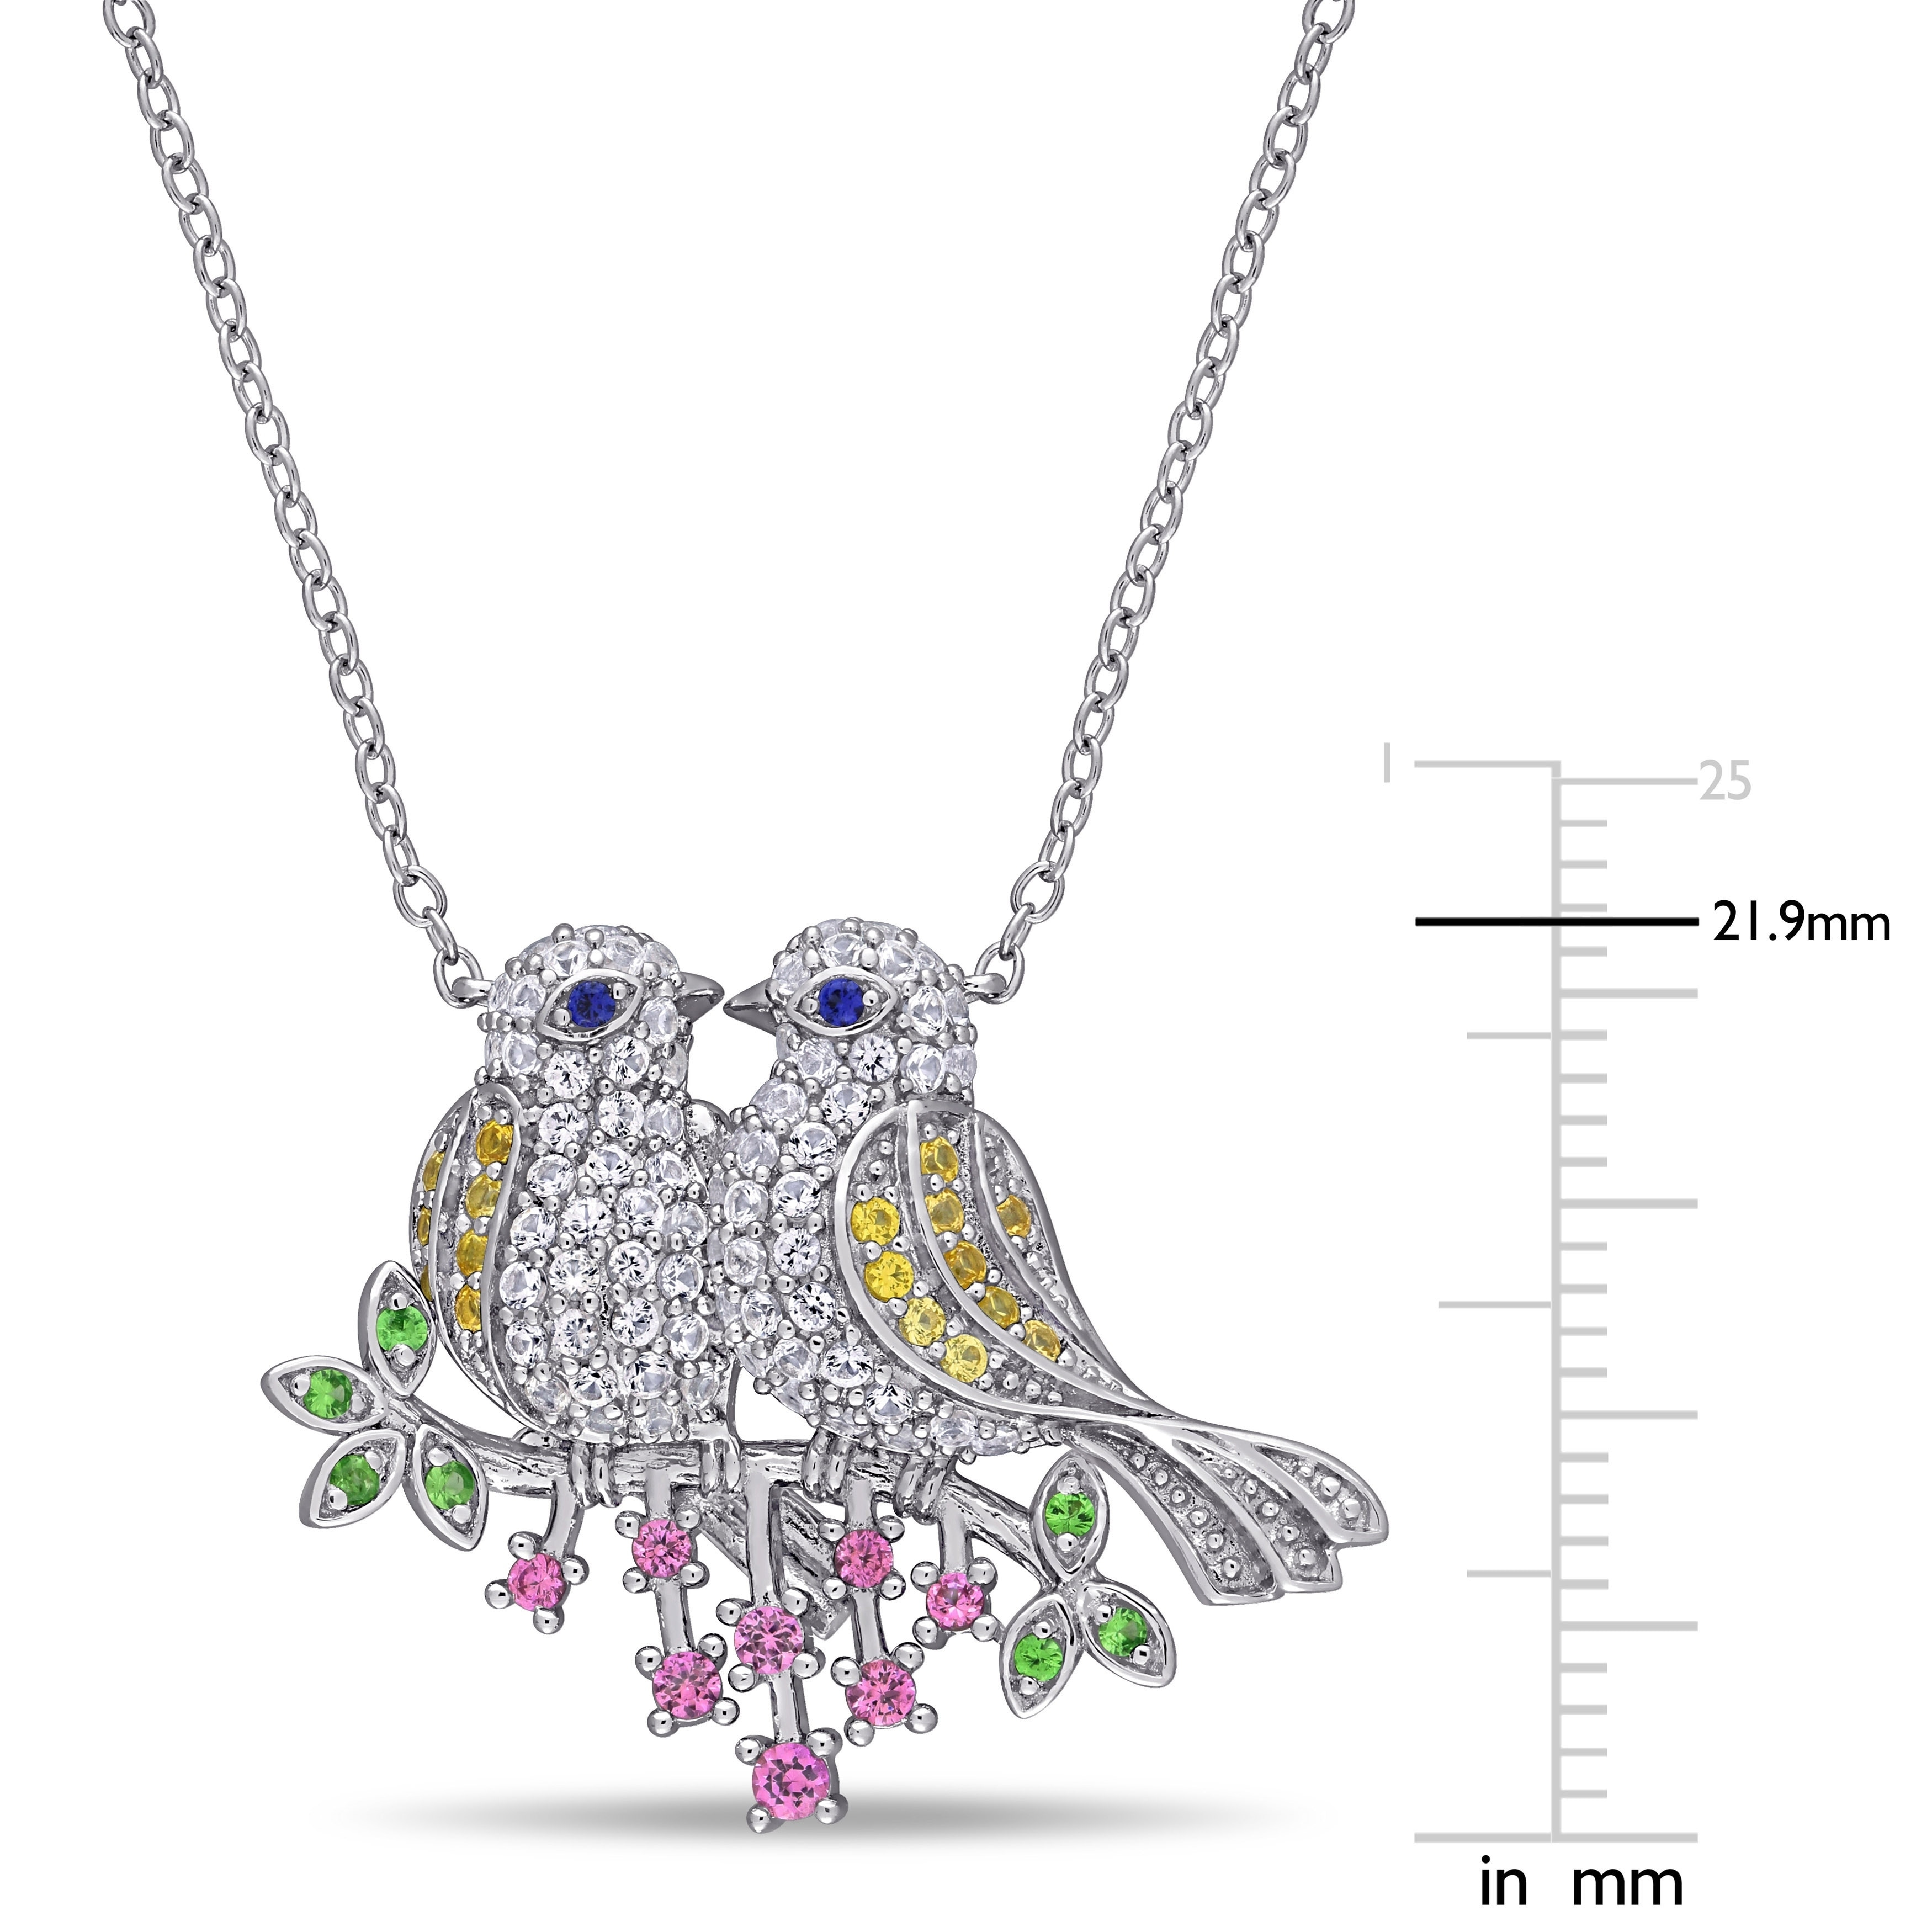 1793bfe02 Shop Laura Ashley Multi-Colored Created Sapphire Tsavorite Budgie Birds on  a Branch Necklace in Sterling Silver - On Sale - Free Shipping Today -  Overstock ...